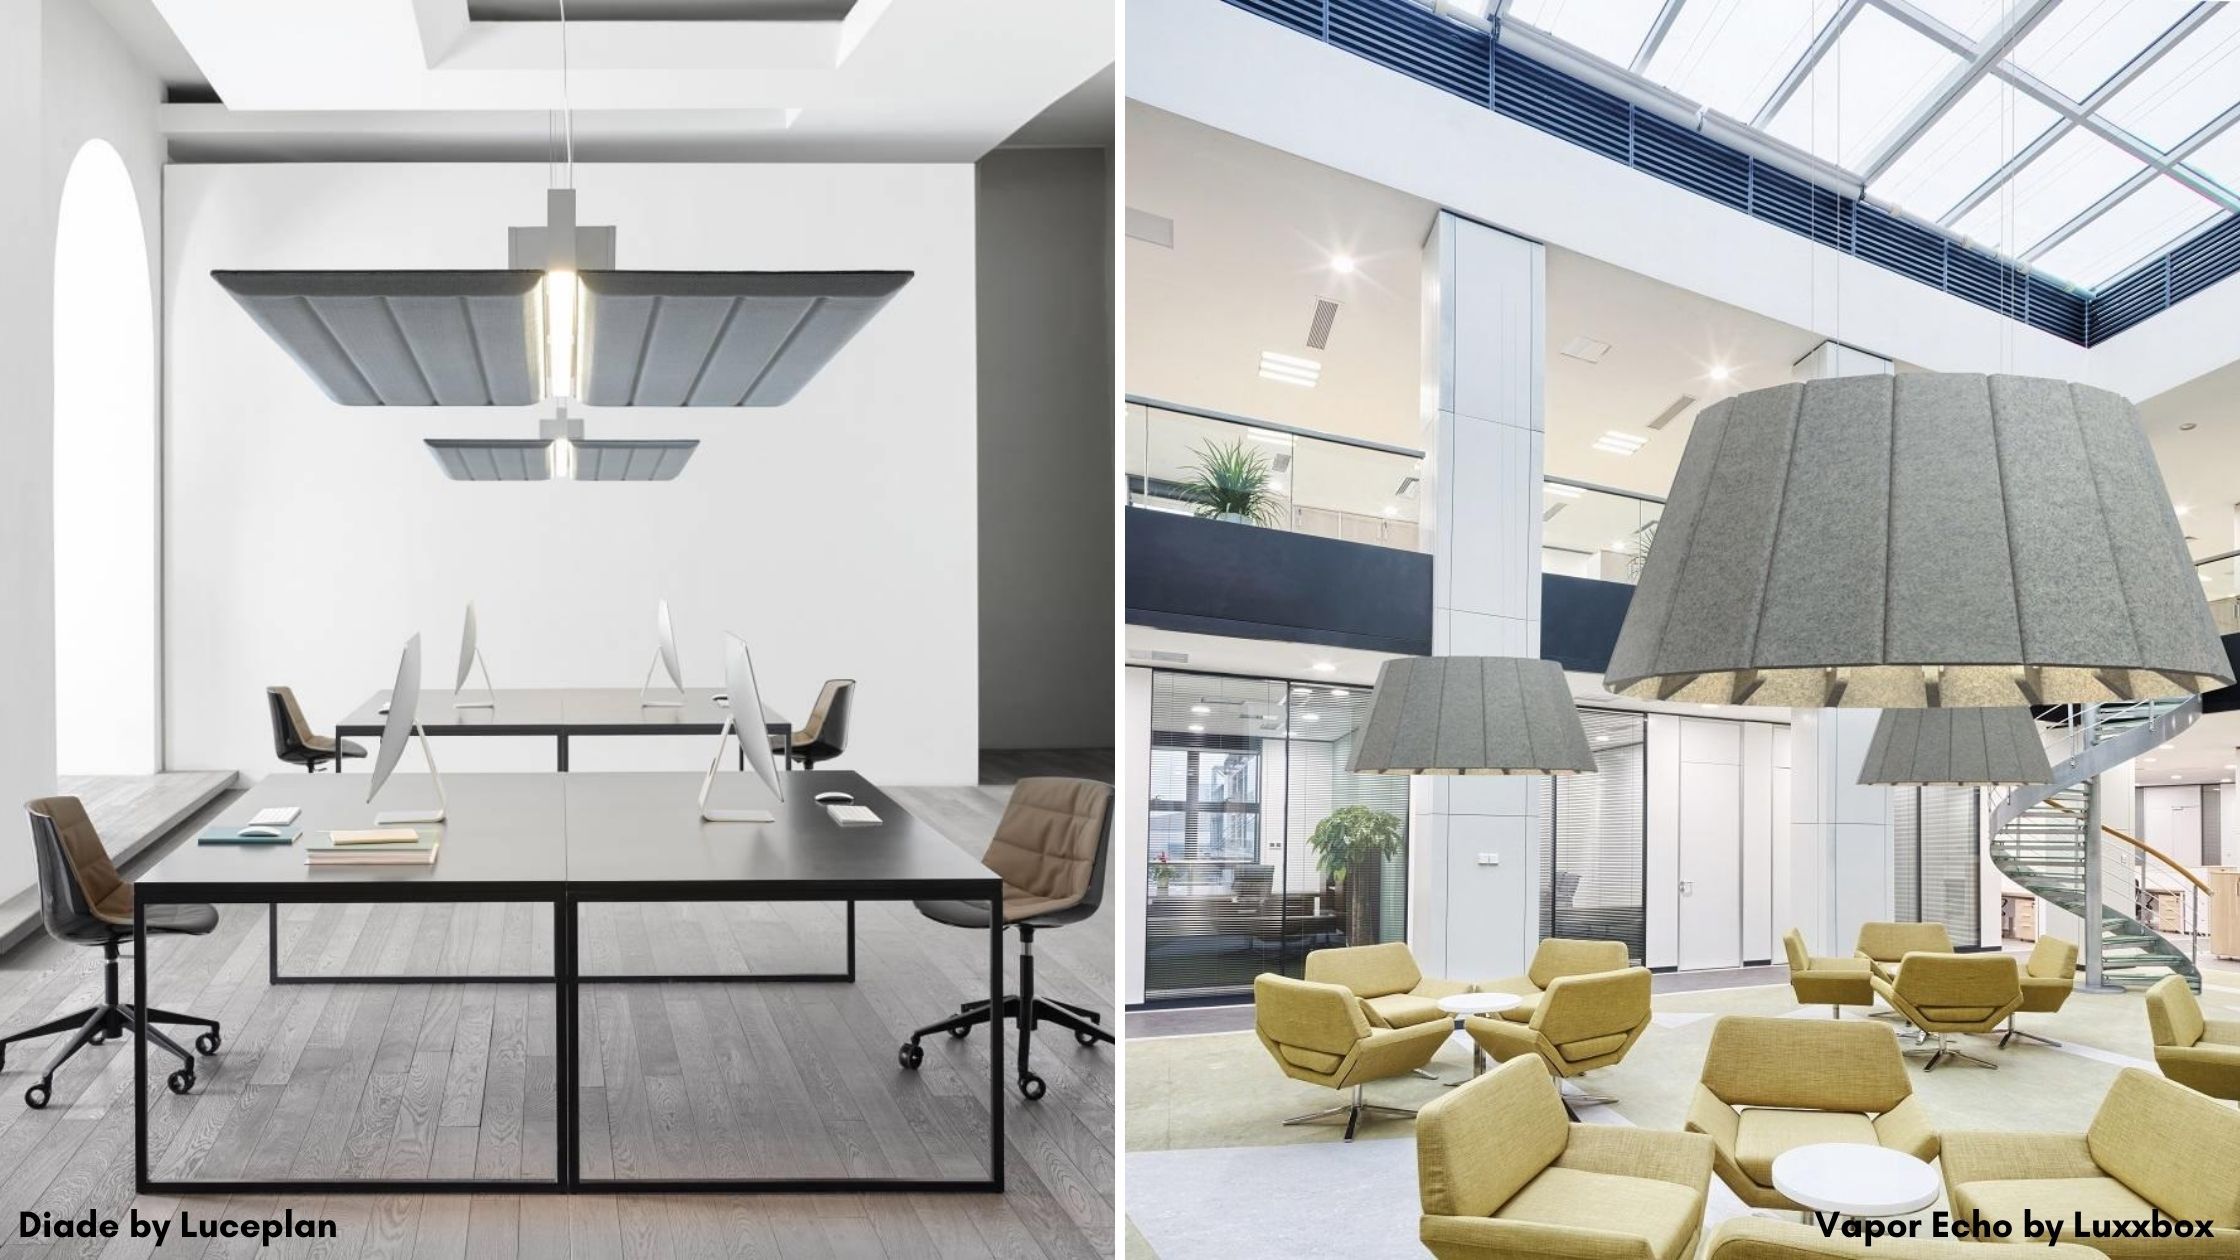 Grey rectangular and circular acoustic light fixtures suspended from ceilings over shared workstations and lounge chairs